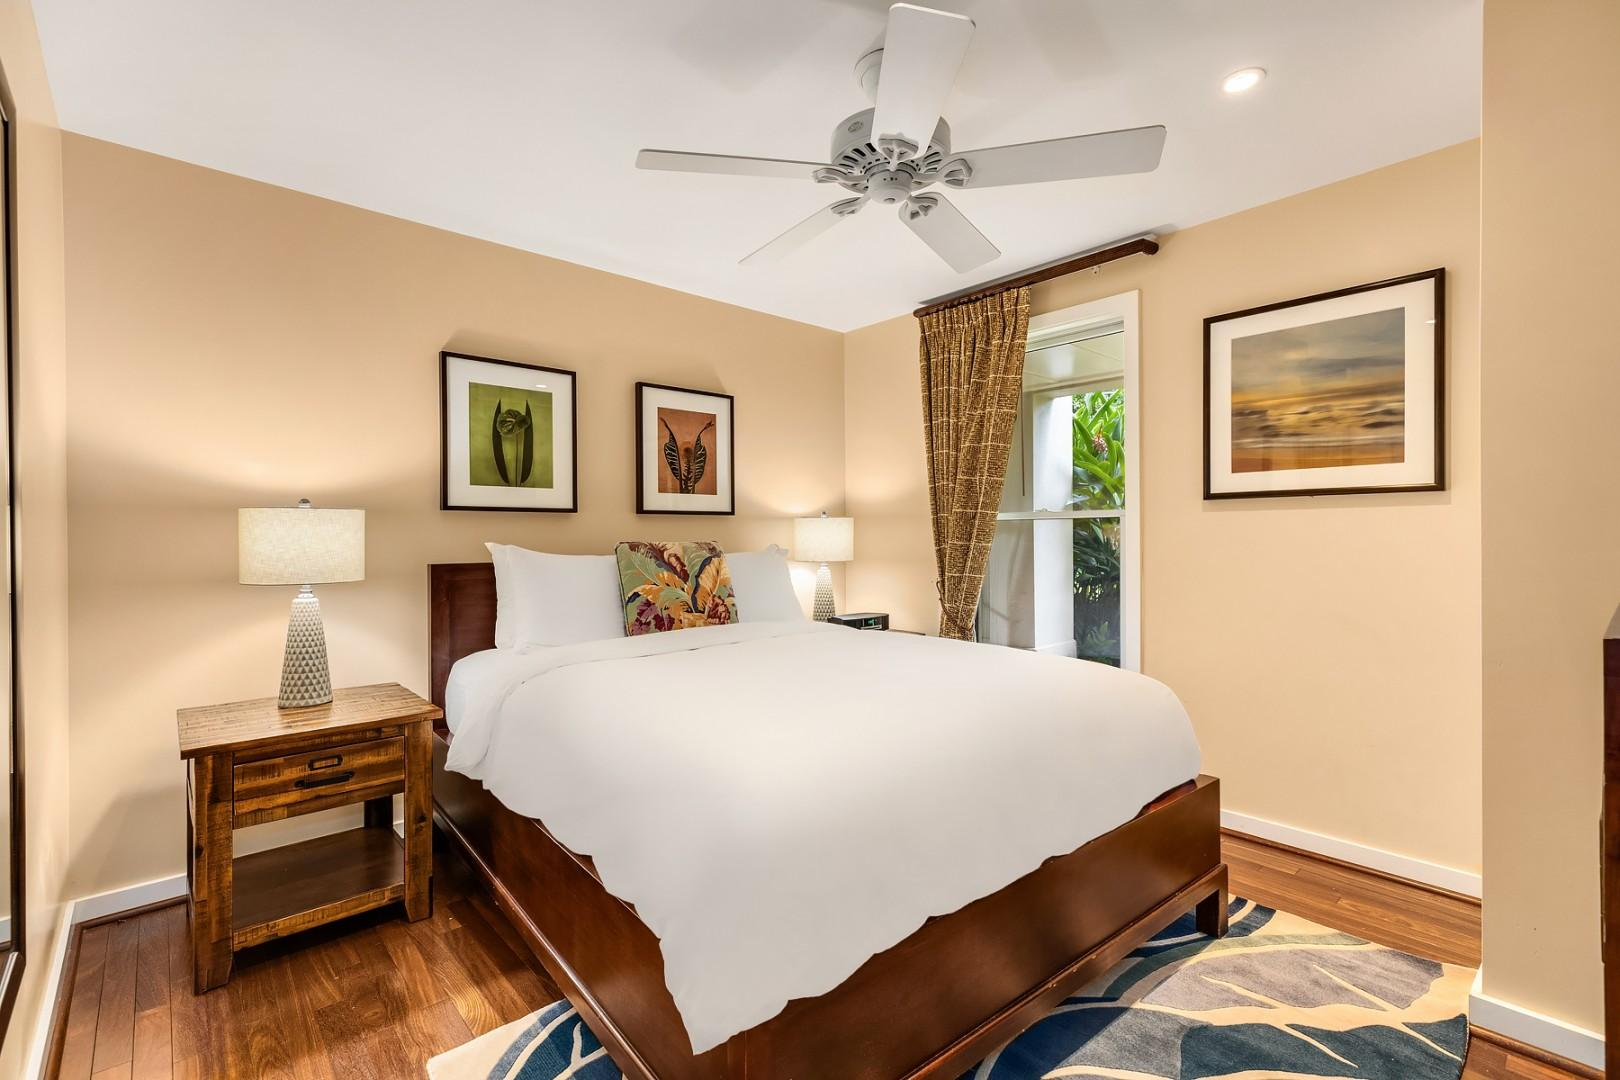 Guest bedroom with queen sized bed and upgraded furnishings.